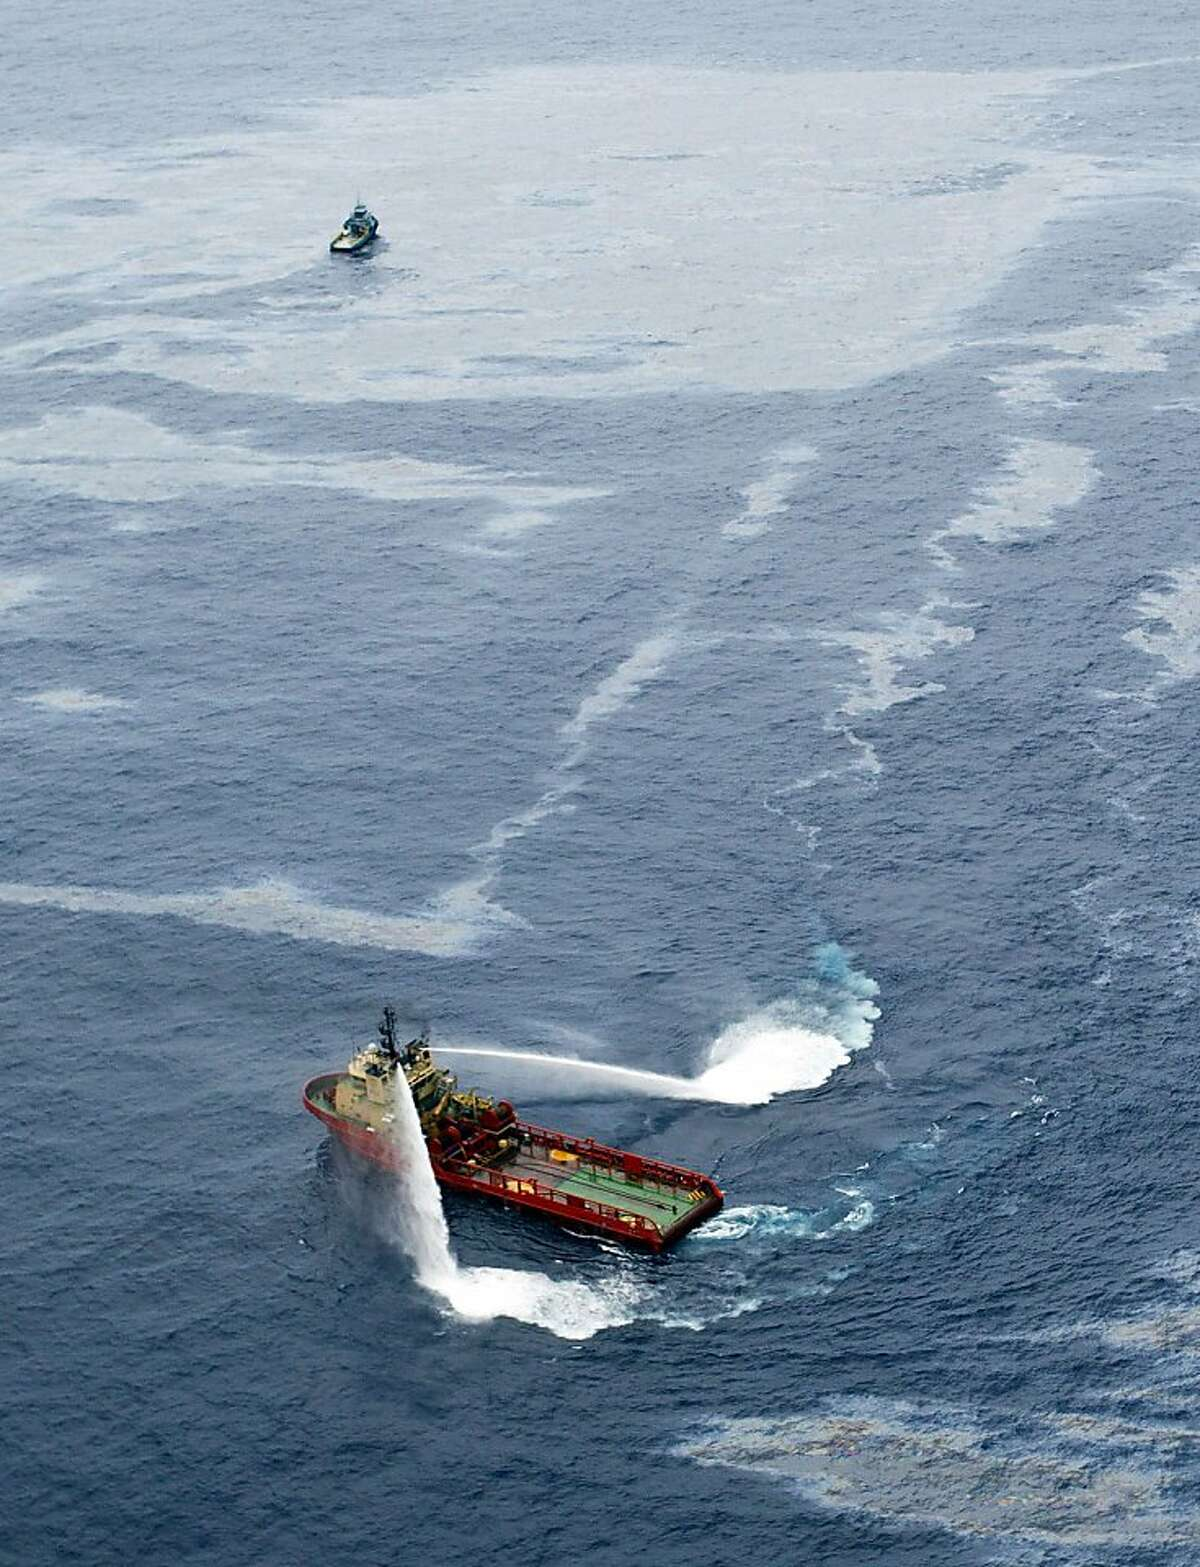 """RESTRICTED TO EDITORIAL USE - MANDATORY CREDIT """"AFP PHOTO/Agncia O GLOBO/Marcia Foletto"""" - NO MARKETING NO ADVERTISING CAMPAIGNS - DISTRIBUTED AS A SERVICE TO CLIENTS - NO ARCHIVES - BRAZIL OUT - INTERNET OUT Handout picture released by Agencia O Globo showing a supply boat working around an oil spill at the Frade field located in the Atlantic Ocean some 370 Km northeast of Rio de Janeiro, on November 18, 2011. The spill, at an offshore well operated by the US energy giant Chevron off the Brazilian coast was detected 10 days ago. On Thursday, Chevron said cementing operations were underway after Brazilian authorities warned that it faces severe punishment if it fails to completely seal the offshore well. AFP PHOTO/Agncia O GLOBO/Marcia Foletto -- BRAZIL OUT - INTERNET OUT (Photo credit should read Marcia Foletto/AFP/Getty Images) Publication: The Houston Chronicle PubDate: 11/19/2011 - PageNo: 3 - Section: D - Edition: H6 - CIMAGEID: 21520767 Caption: AFP / AGENCIA O GLOBO RESTRICTED TO EDITORIAL USE - MANDATORY CREDIT """"AFP PHOTO/Agência O GLOBO/Marcia Foletto"""" - NO MARKETING NO ADVERTISING CAMPAIGNS - DISTRIBUTED AS A SERVICE TO CLIENTS - NO ARCHIVES - BRAZIL OUT - INTERNET OUT Handout picture released by Agencia O Globo showing a supply boat working around an oil spill at the Frade field located in the Atlantic Ocean some 370 Km northeast of Rio de Janeiro, on November 18, 2011. The spill, at an offshore well operated by the US energy giant Chevron off the Brazilian coast was detected 10 days ago. On Thursday, Chevron said cementing operations were underway after Brazilian authorities warned that it faces severe punishment if it fails to completely seal the offshore well. AFP PHOTO/Agência O GLOBO/Marcia Foletto -- BRAZIL OUT - INTERNET OUT (Photo credit should read Marcia Foletto/AFP/Getty Images)"""